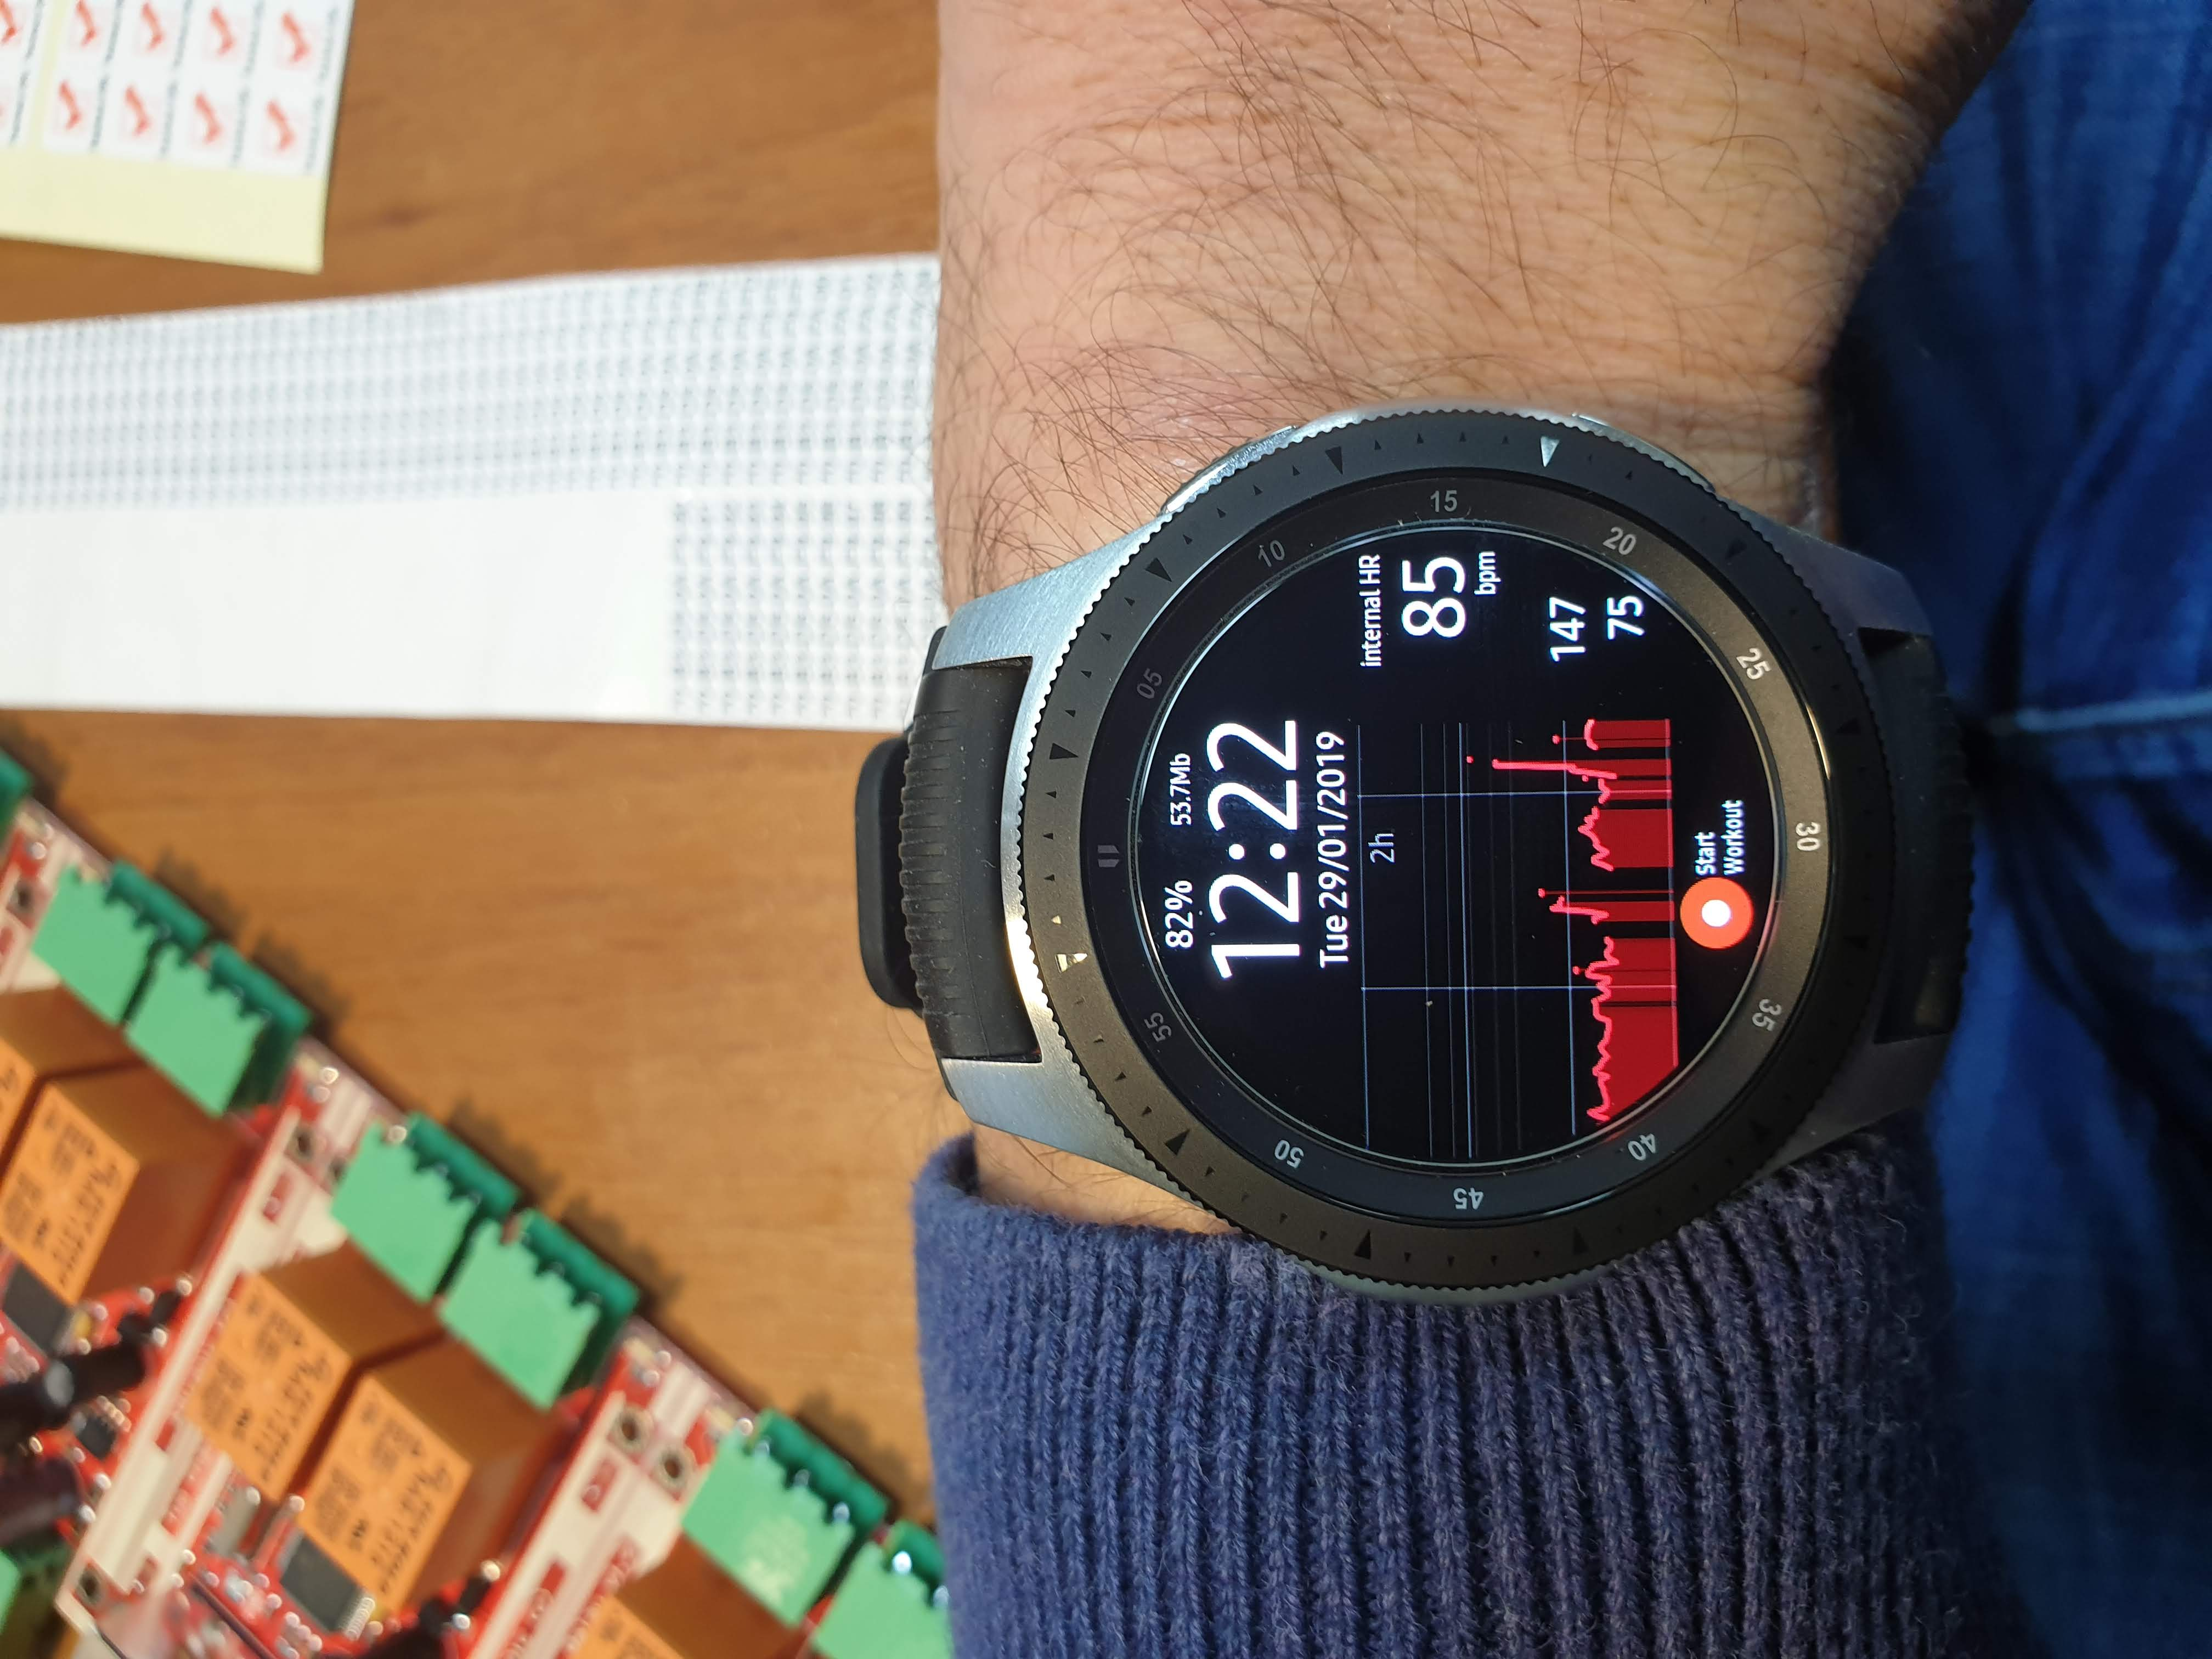 Galaxy Watch not measuring Heart rate - Samsung Community